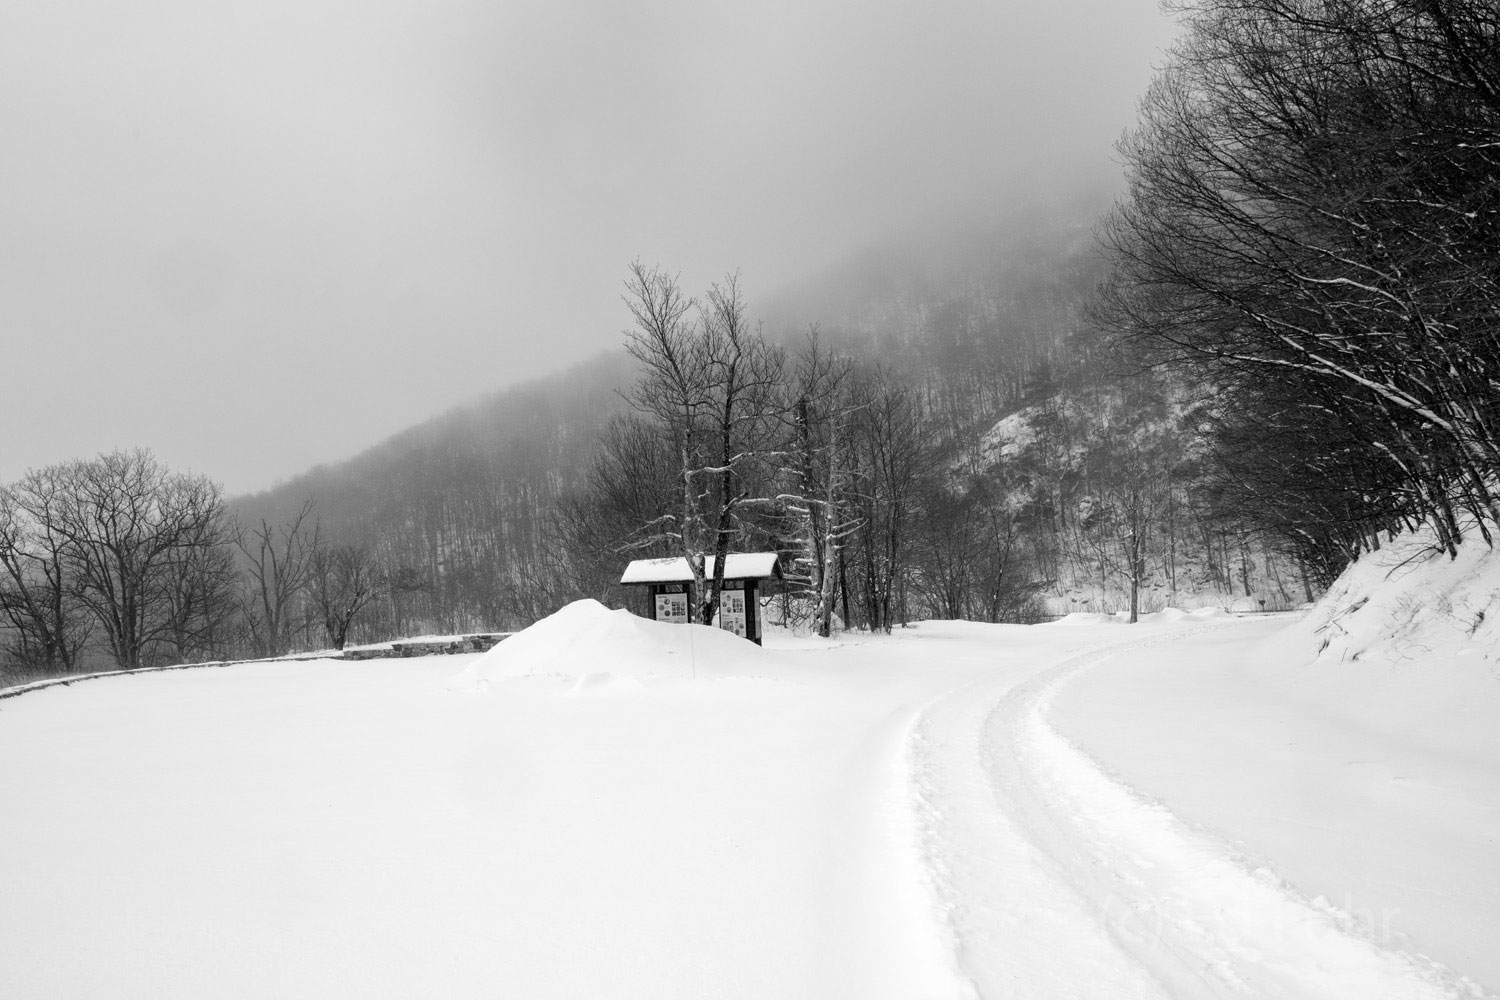 Shenandoah national park, image, photograph, winter, snow, photo